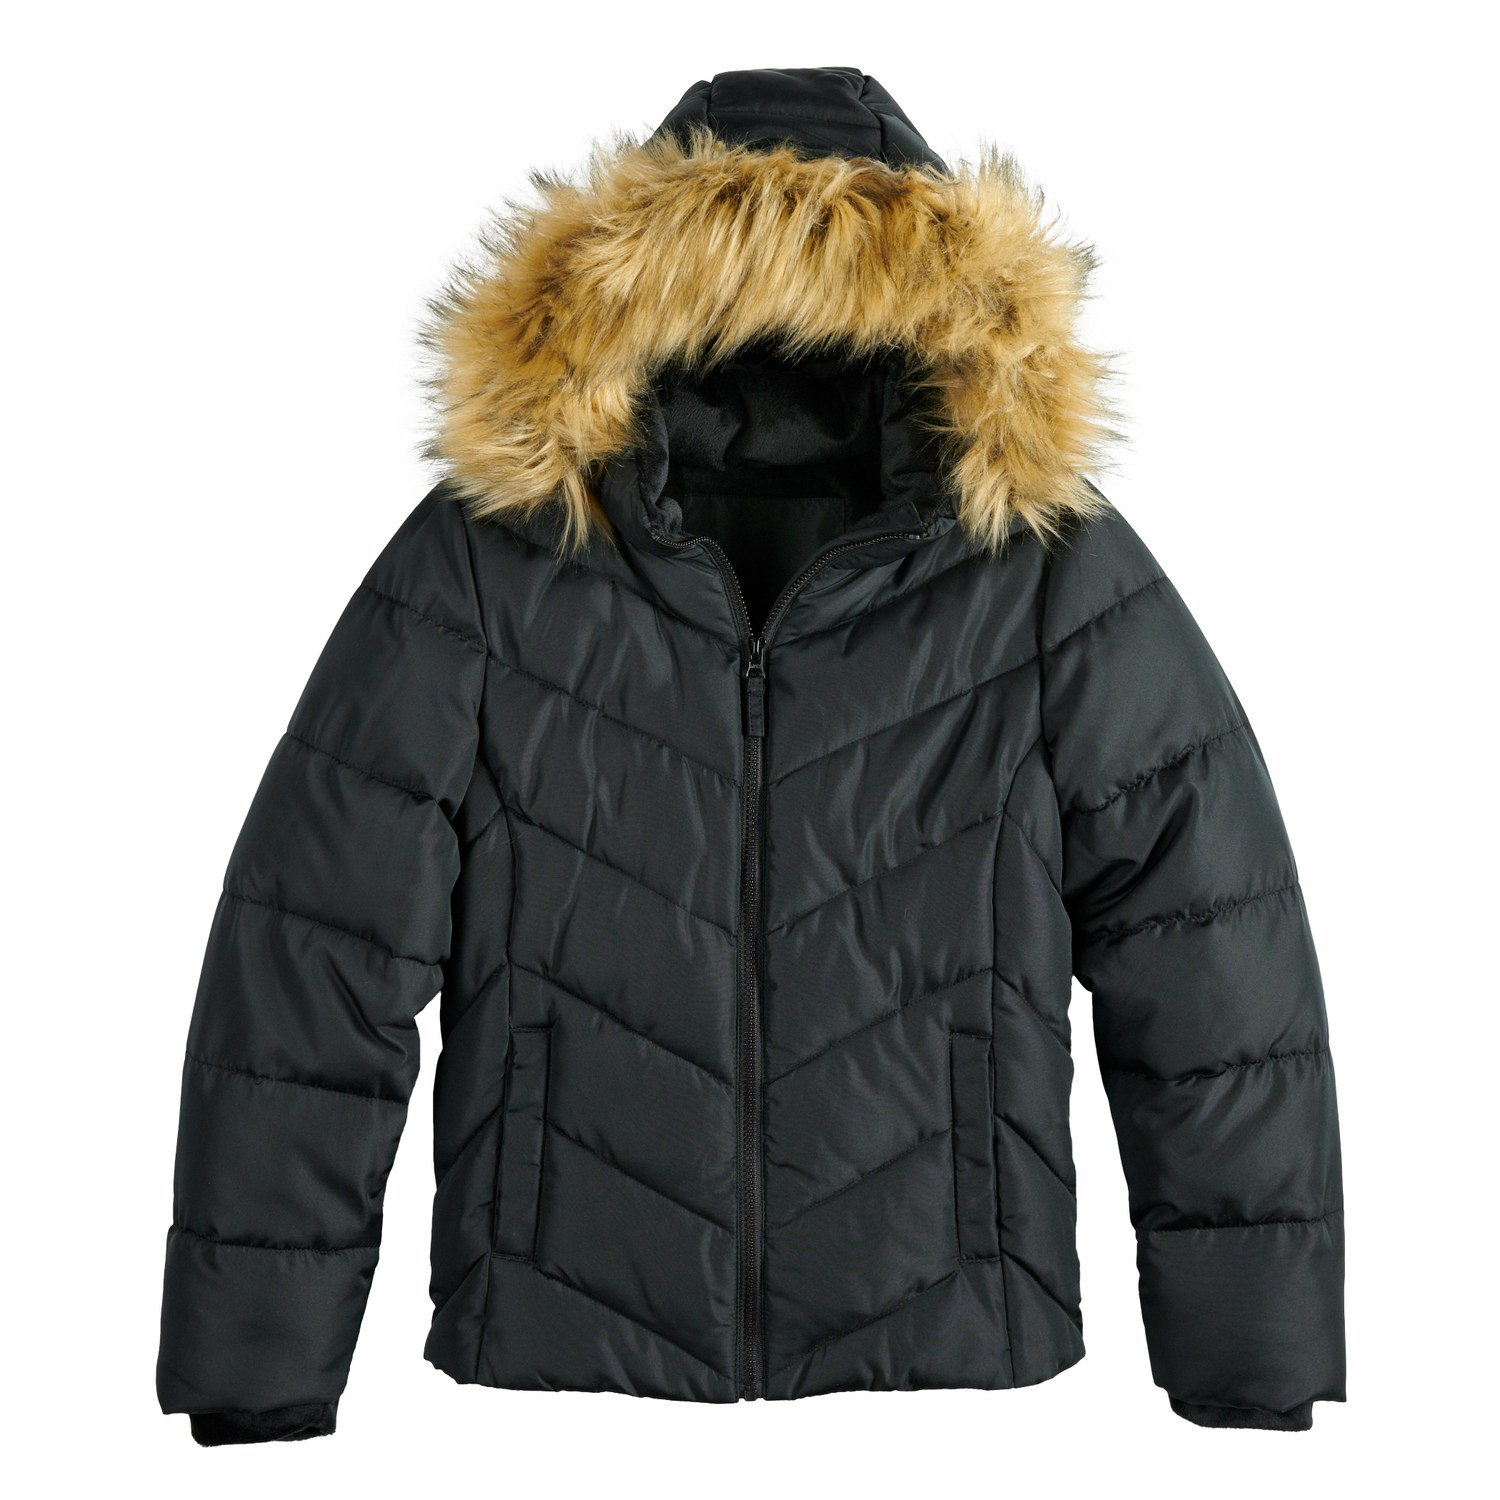 The right jacket for girls in any weather